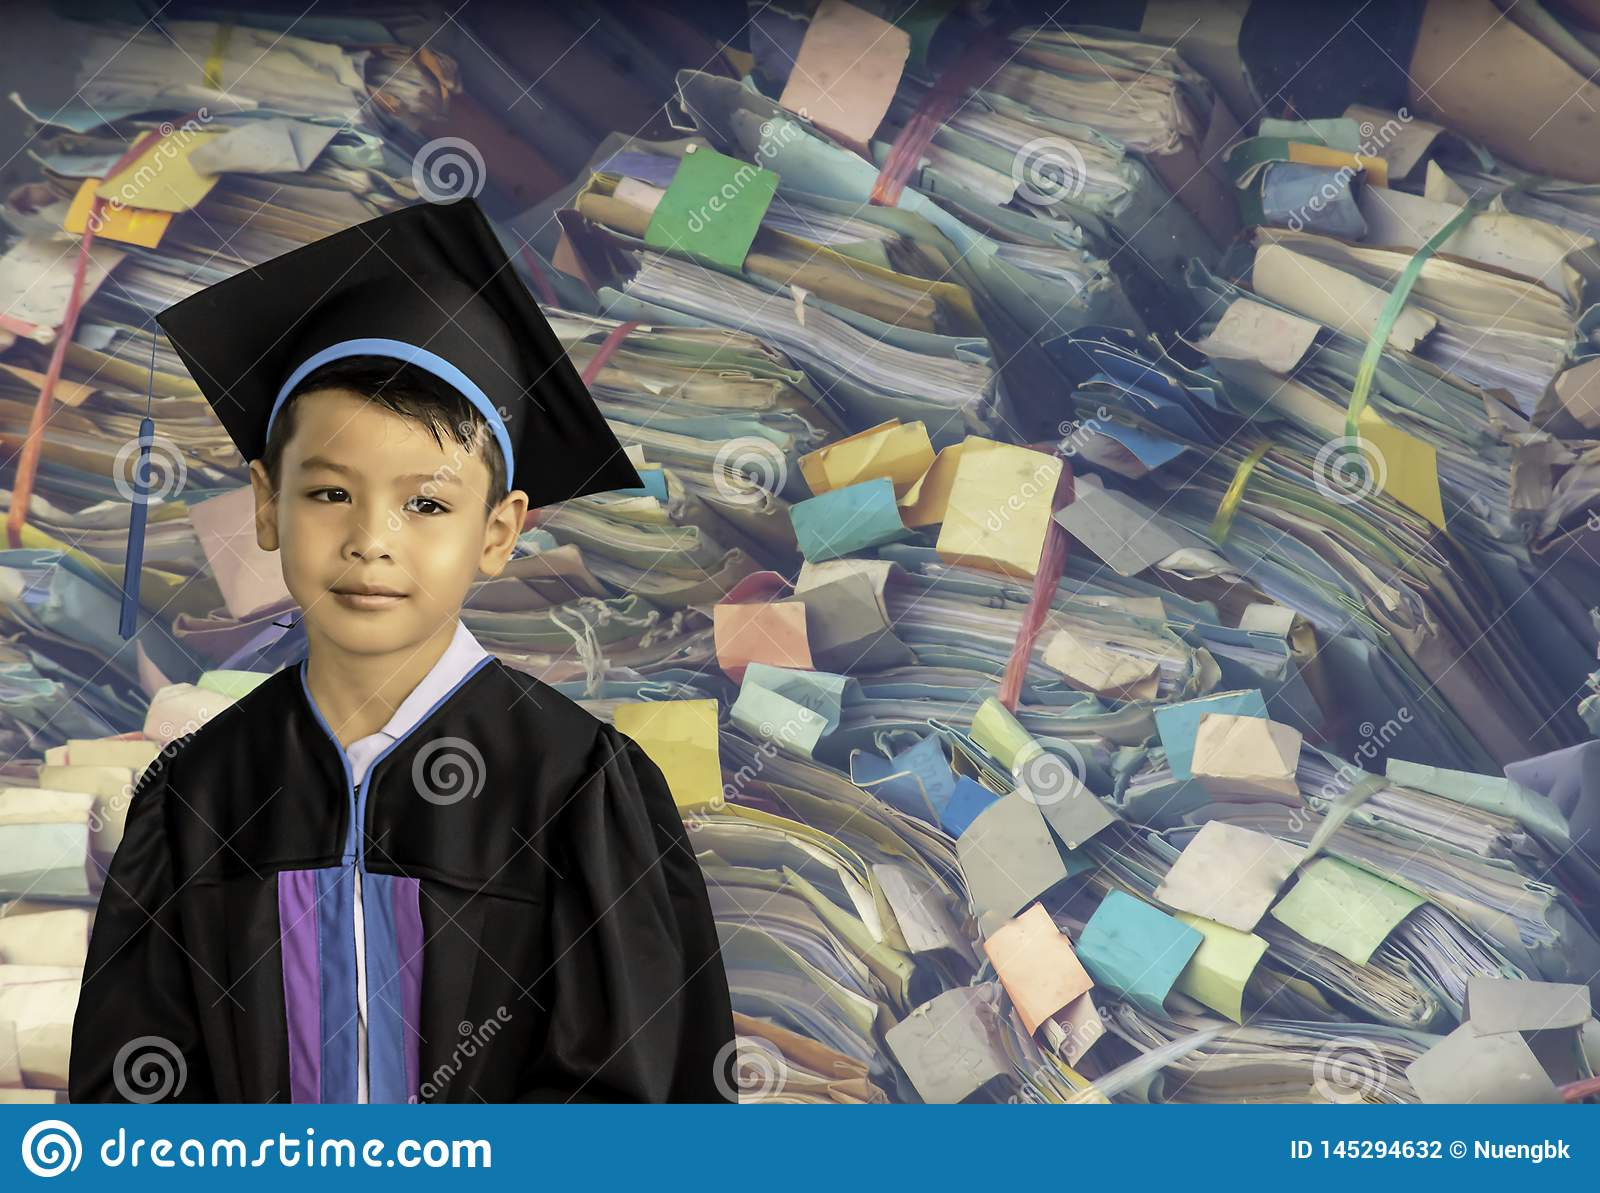 The boy graduated from kindergarten. This study is the first to advance to the next level  Background Colorful Dossier made of